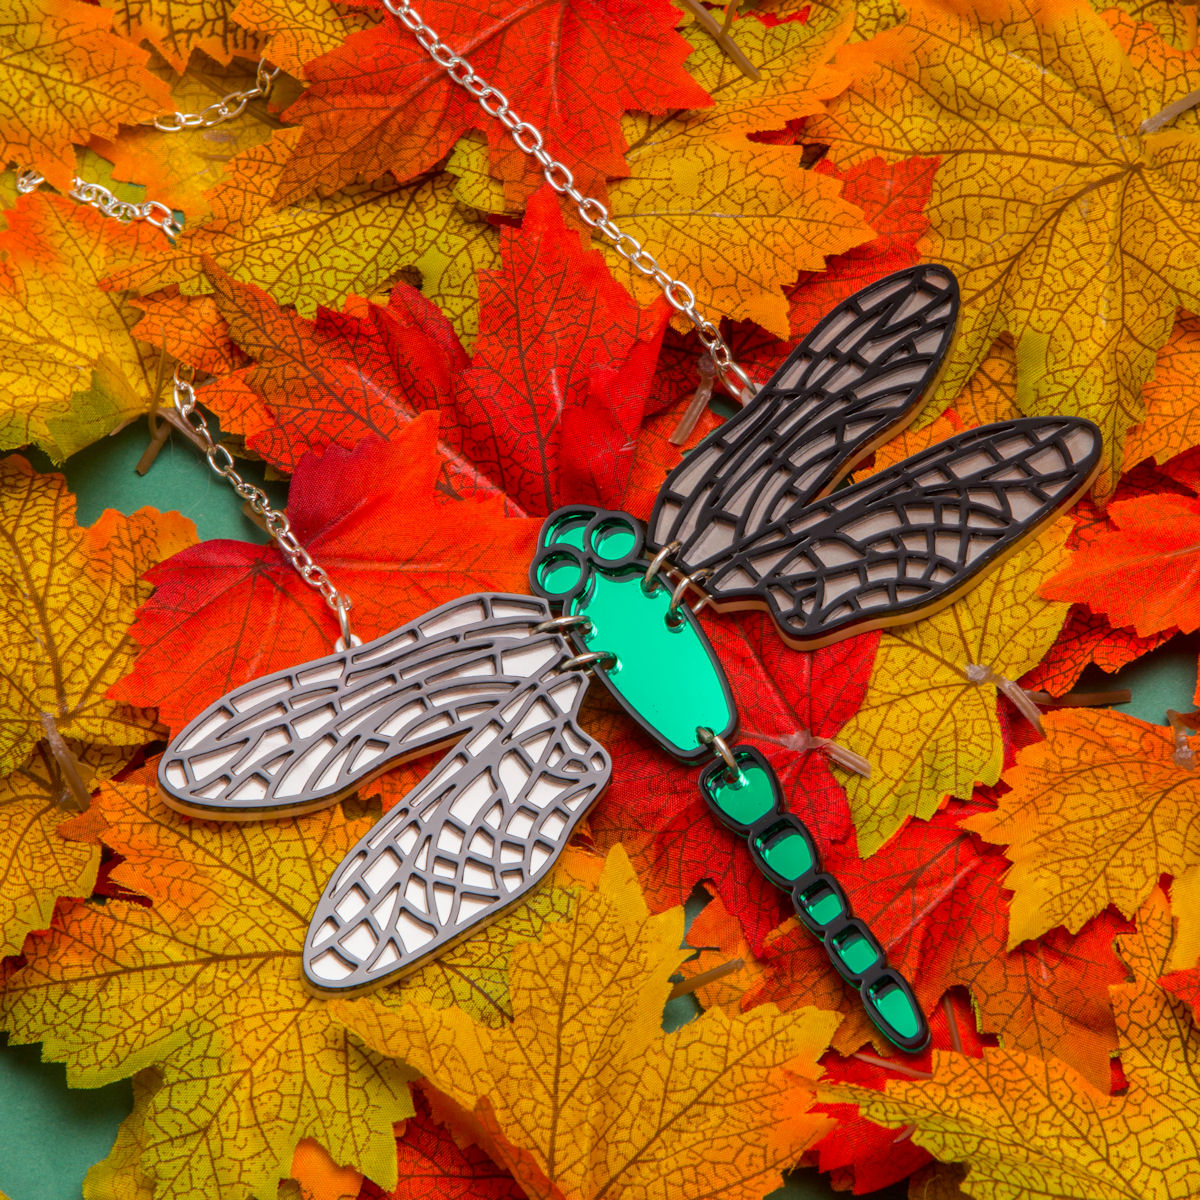 Sugar & Vice Dragonfly necklace social media